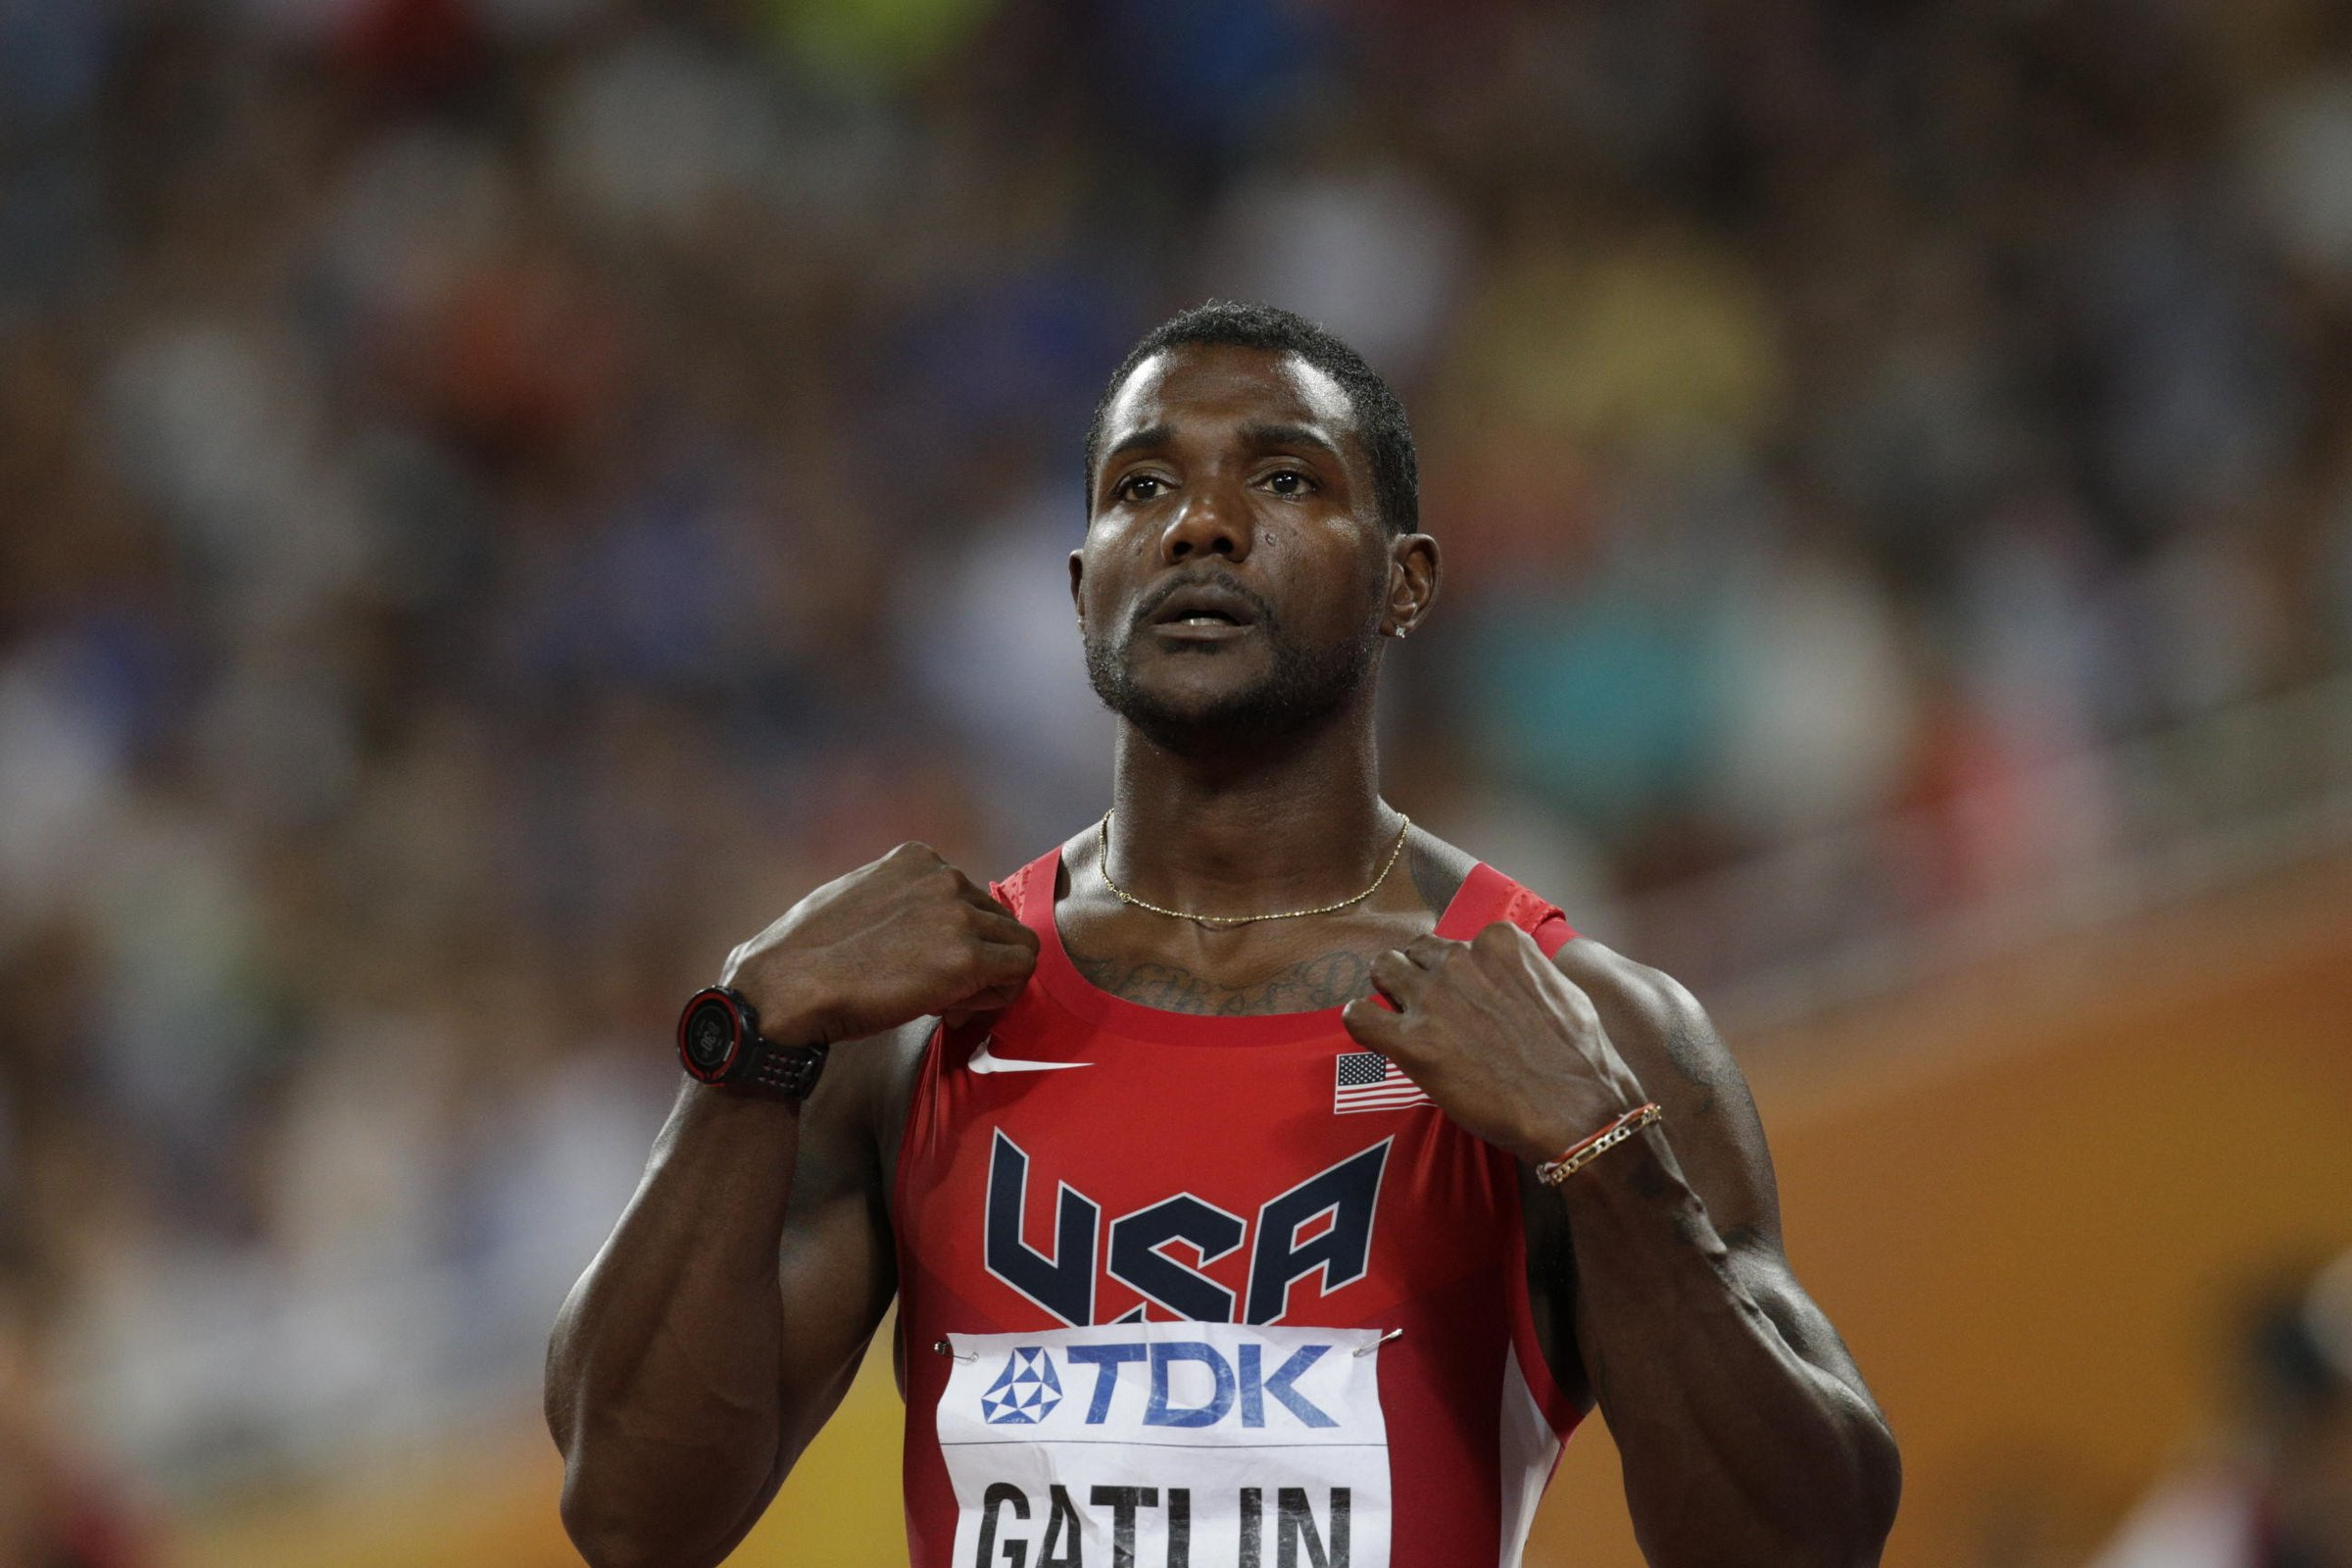 Justin Gatlin (USA) readies himself before the men's 200-meter semifinal.